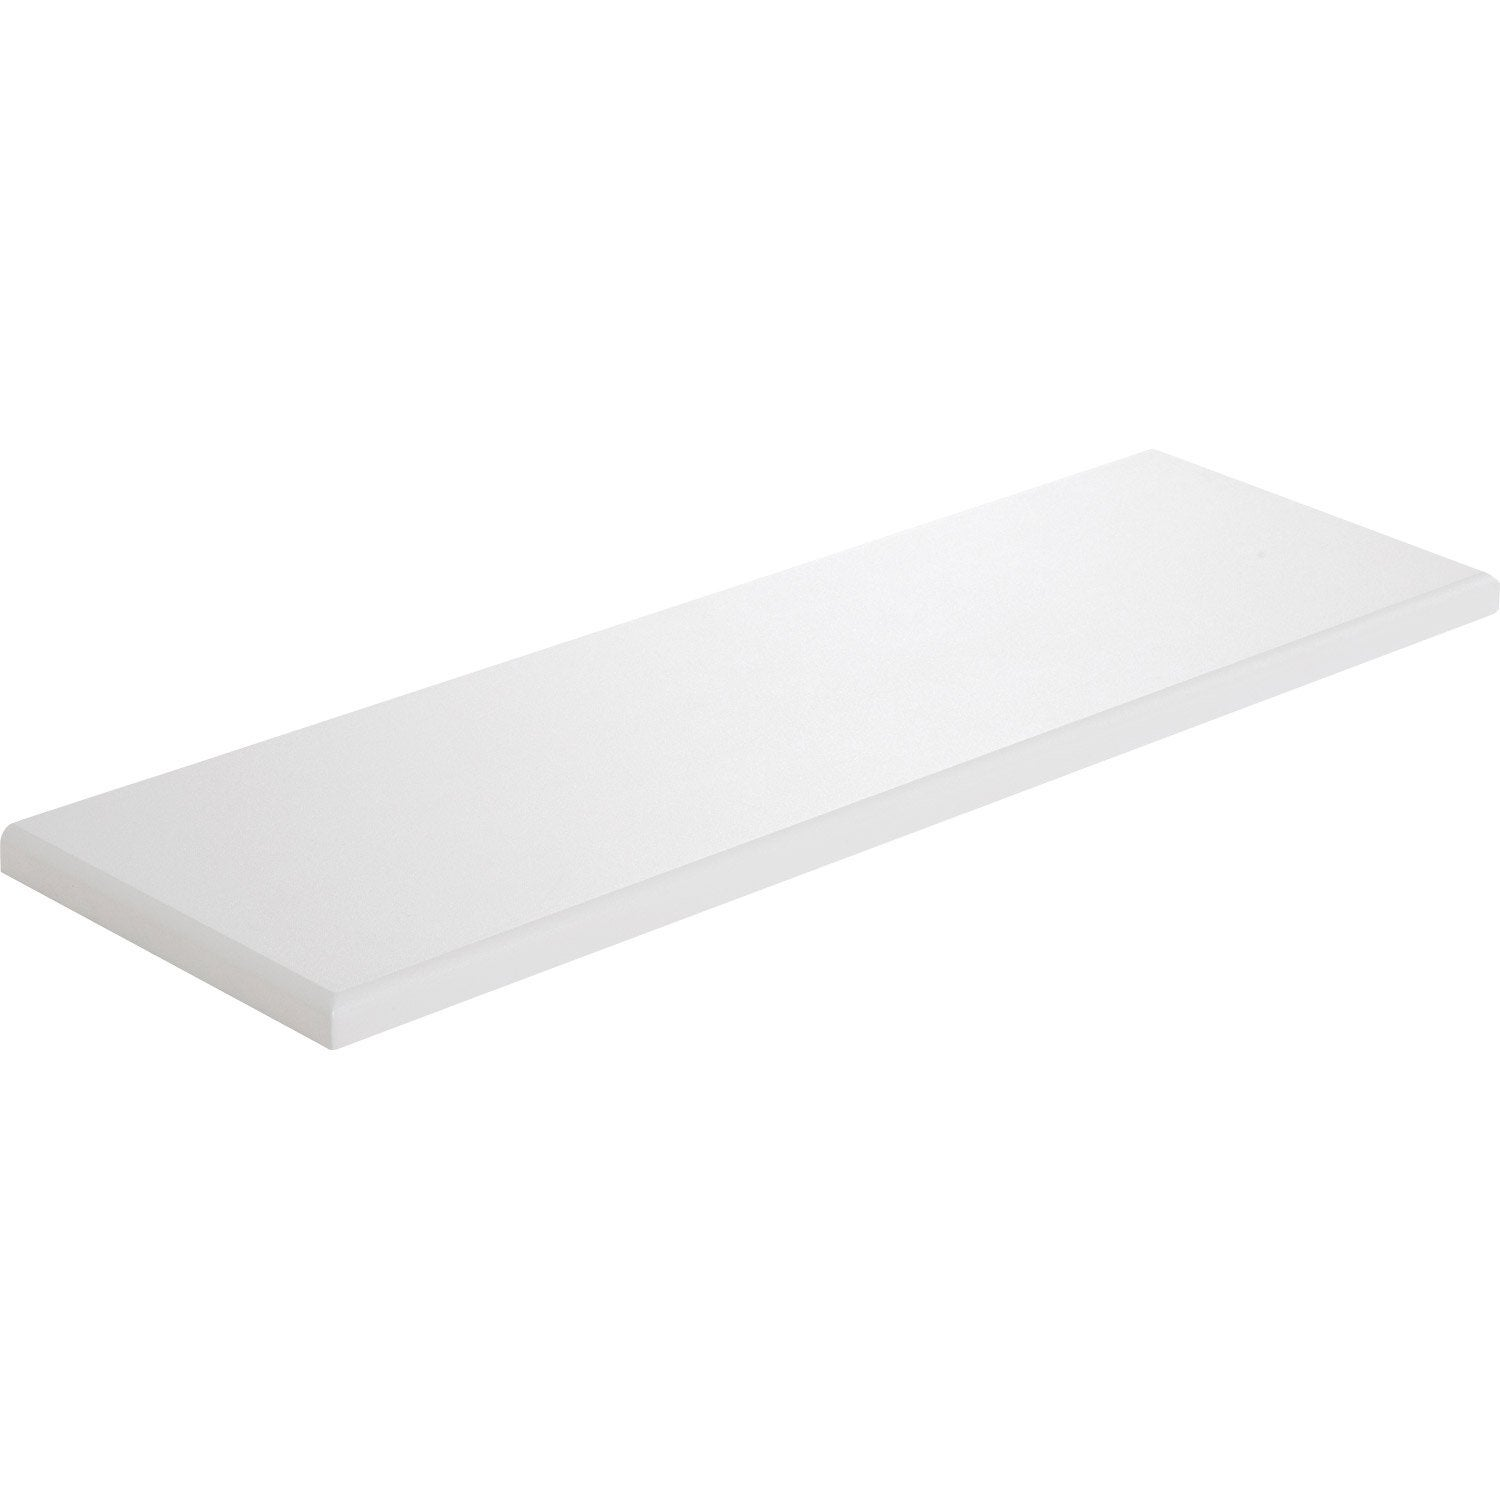 Tablette radiateur blanc l 60 x p 20 cm mm leroy - Tablette verre leroy merlin ...